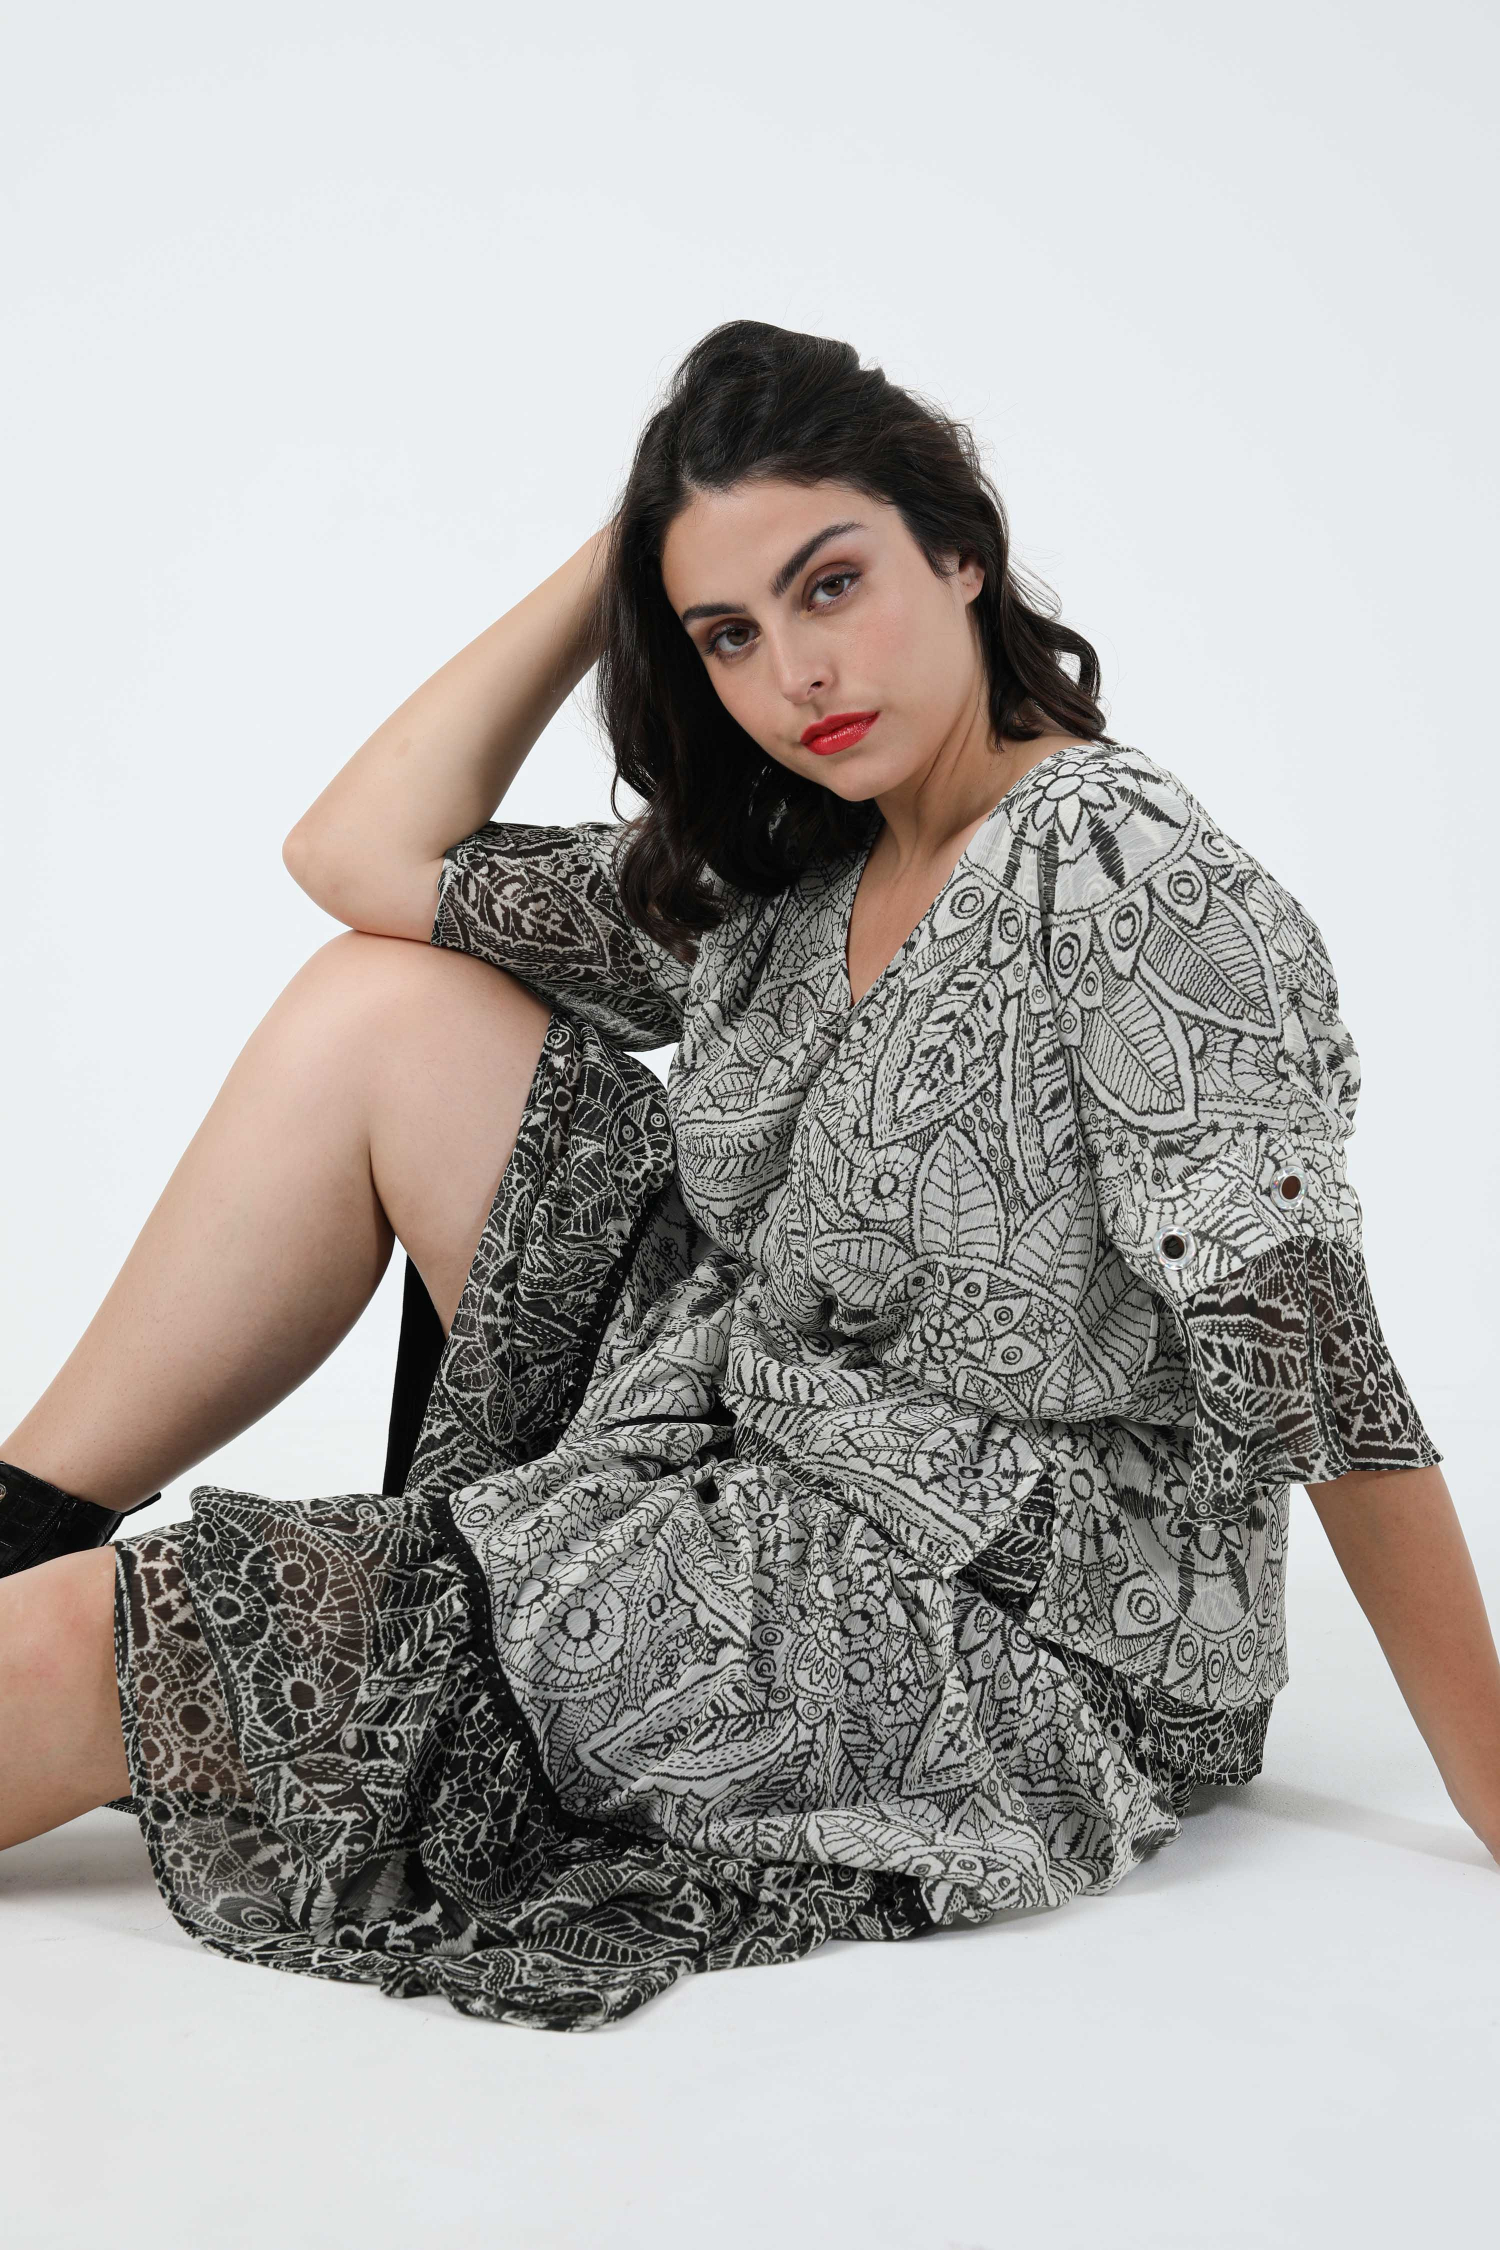 Blouse in printed veil overlaid with eyelets in eoko-tex fabrics (shipping September 15/20)